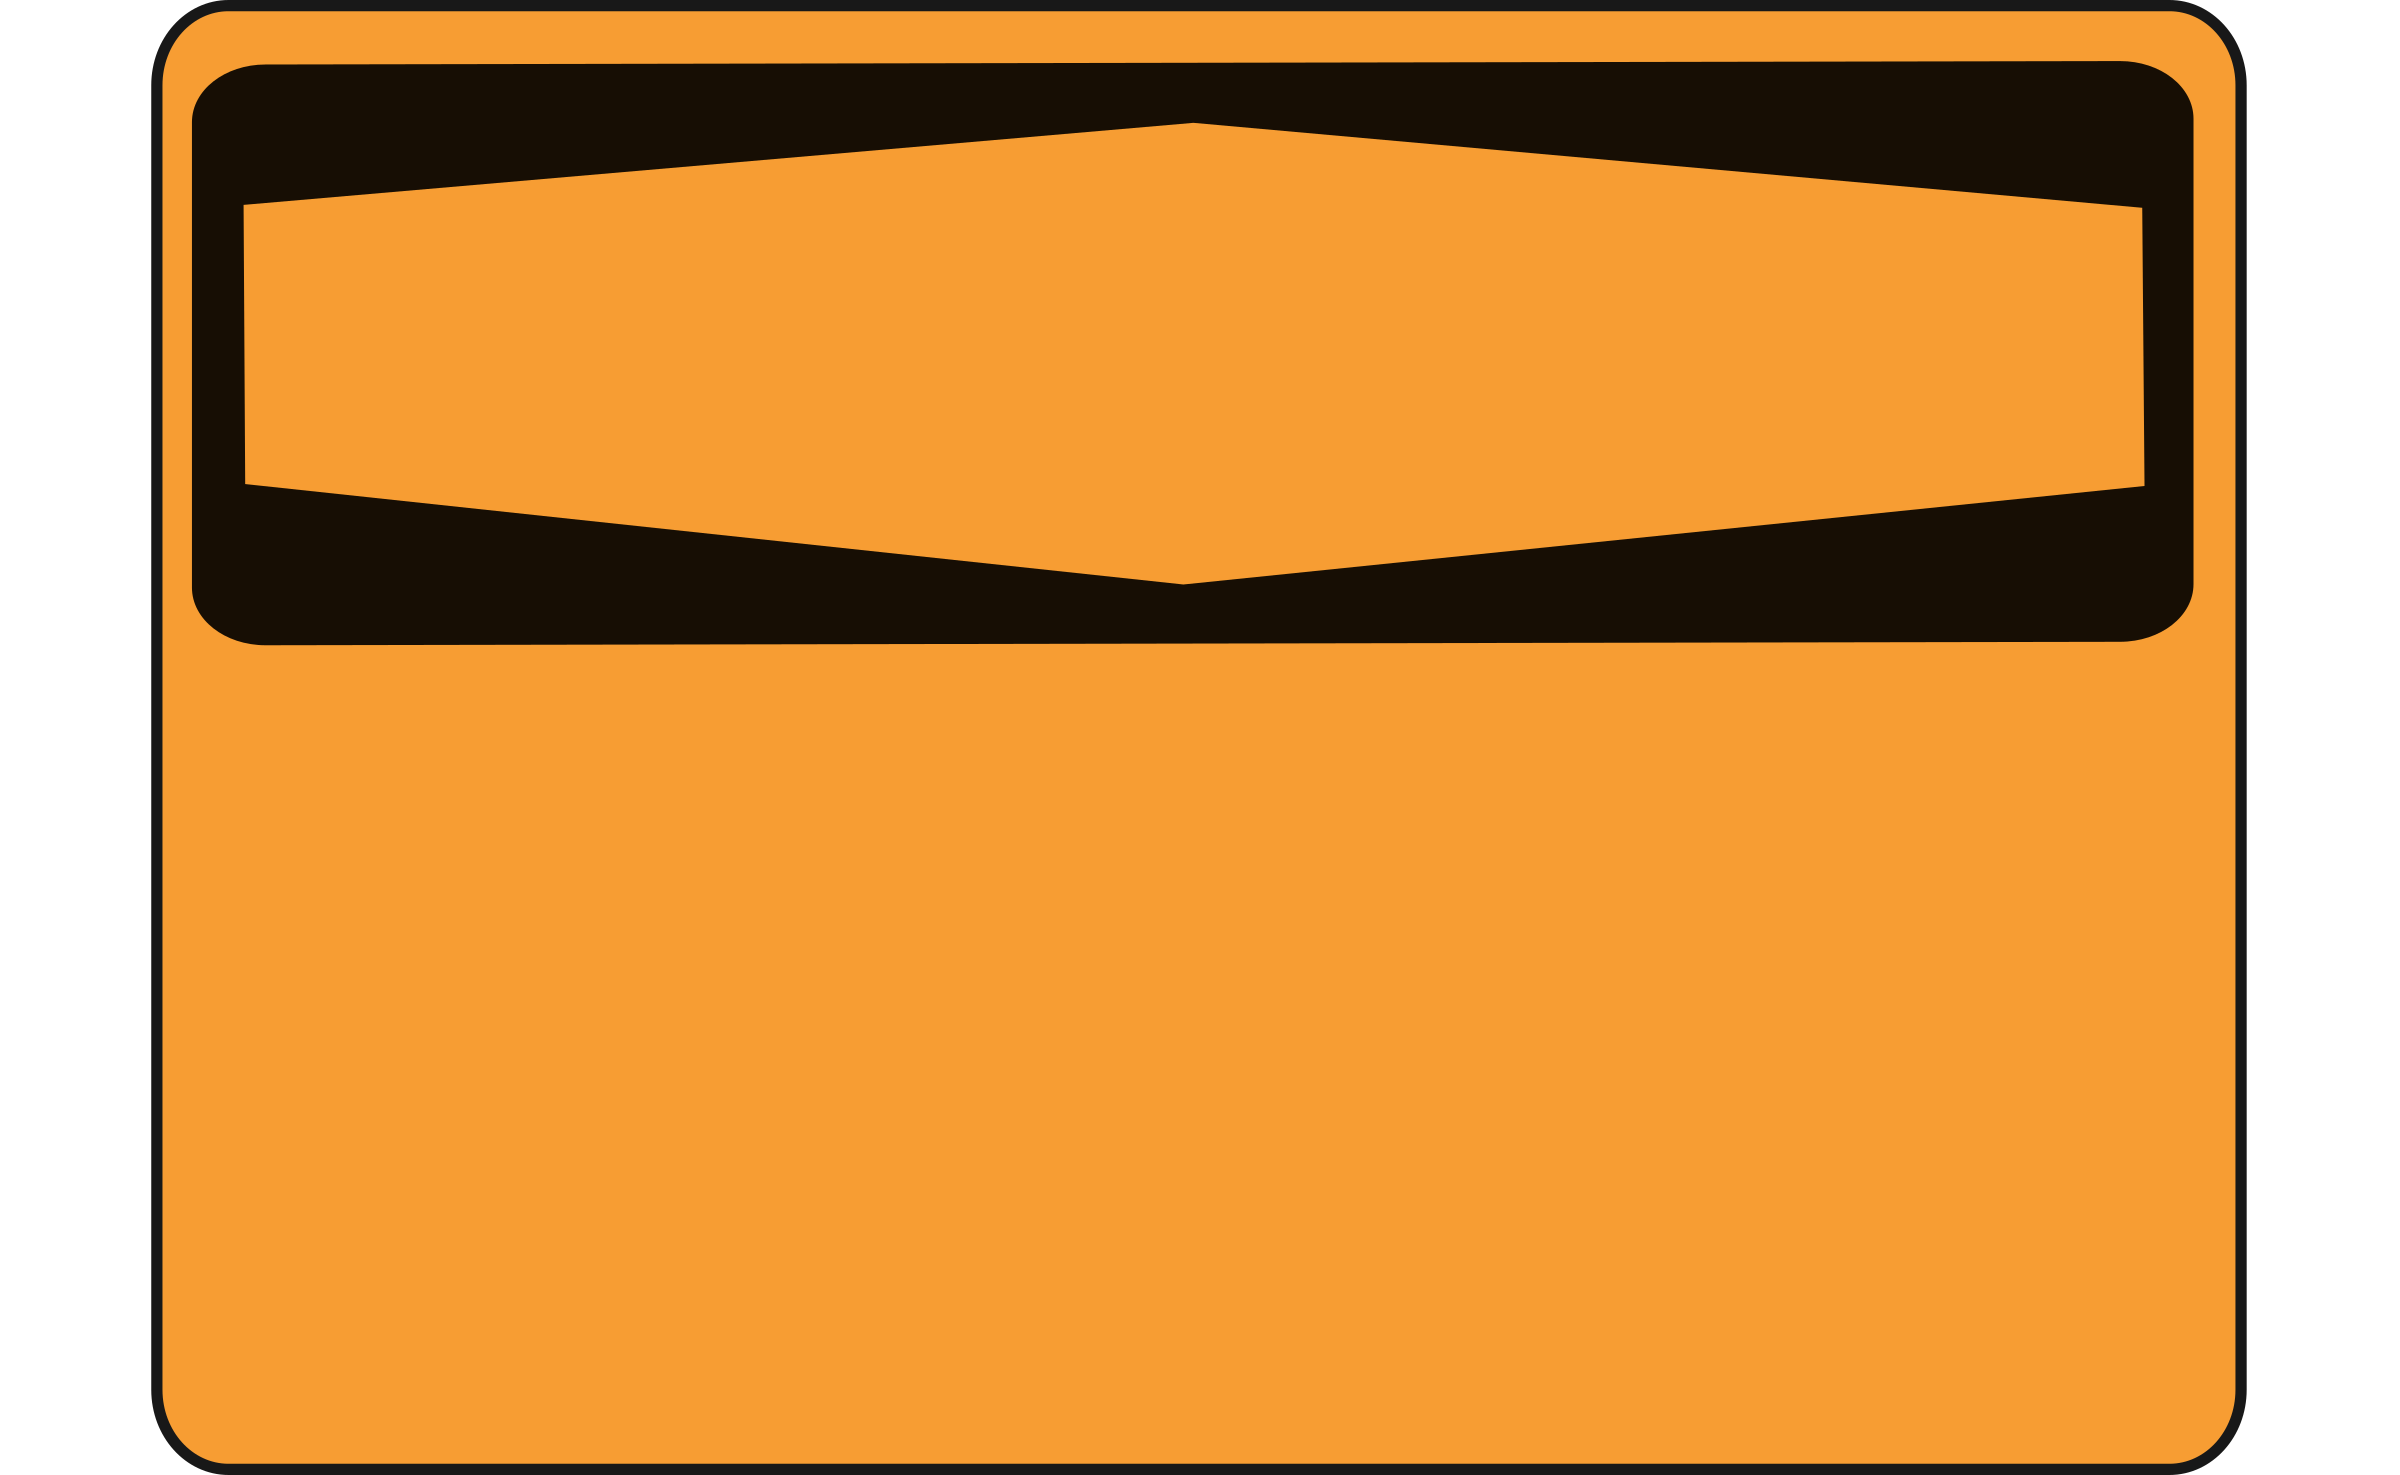 Warning - Blank (orange) by Rfc1394